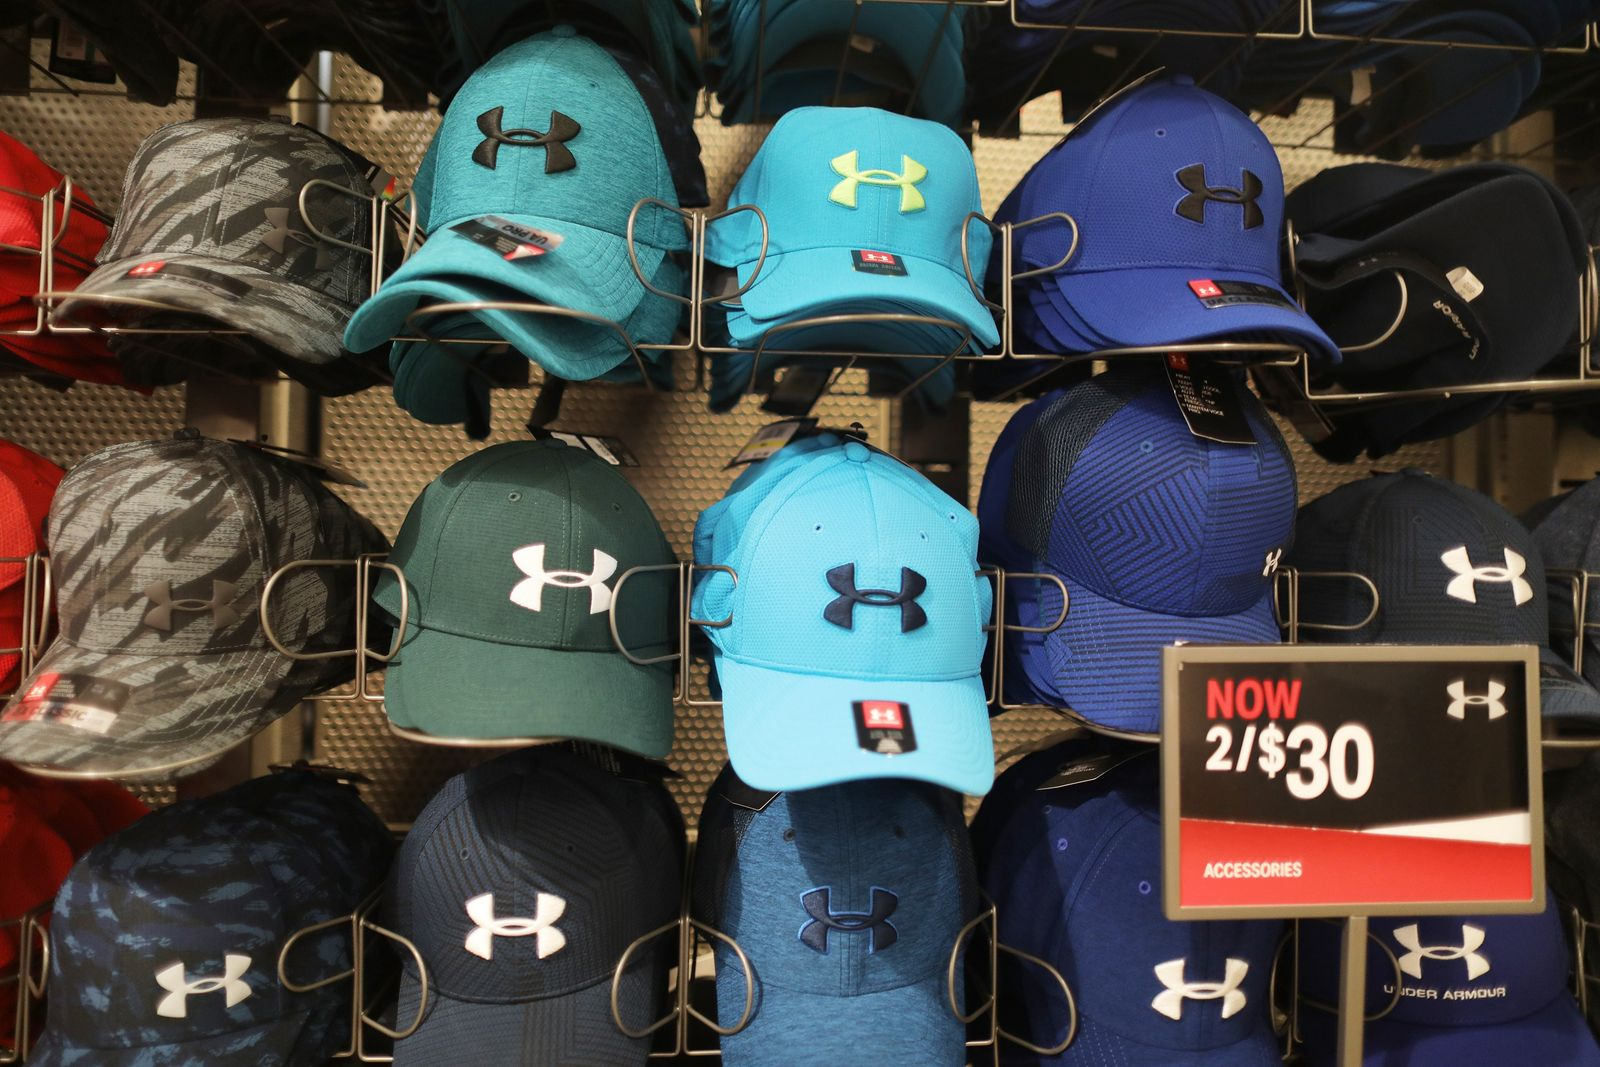 US-ATHLETIC-APPAREL-MAKER-UNDER-ARMOUR-UNDER-INVESTIGATION-FOR-A